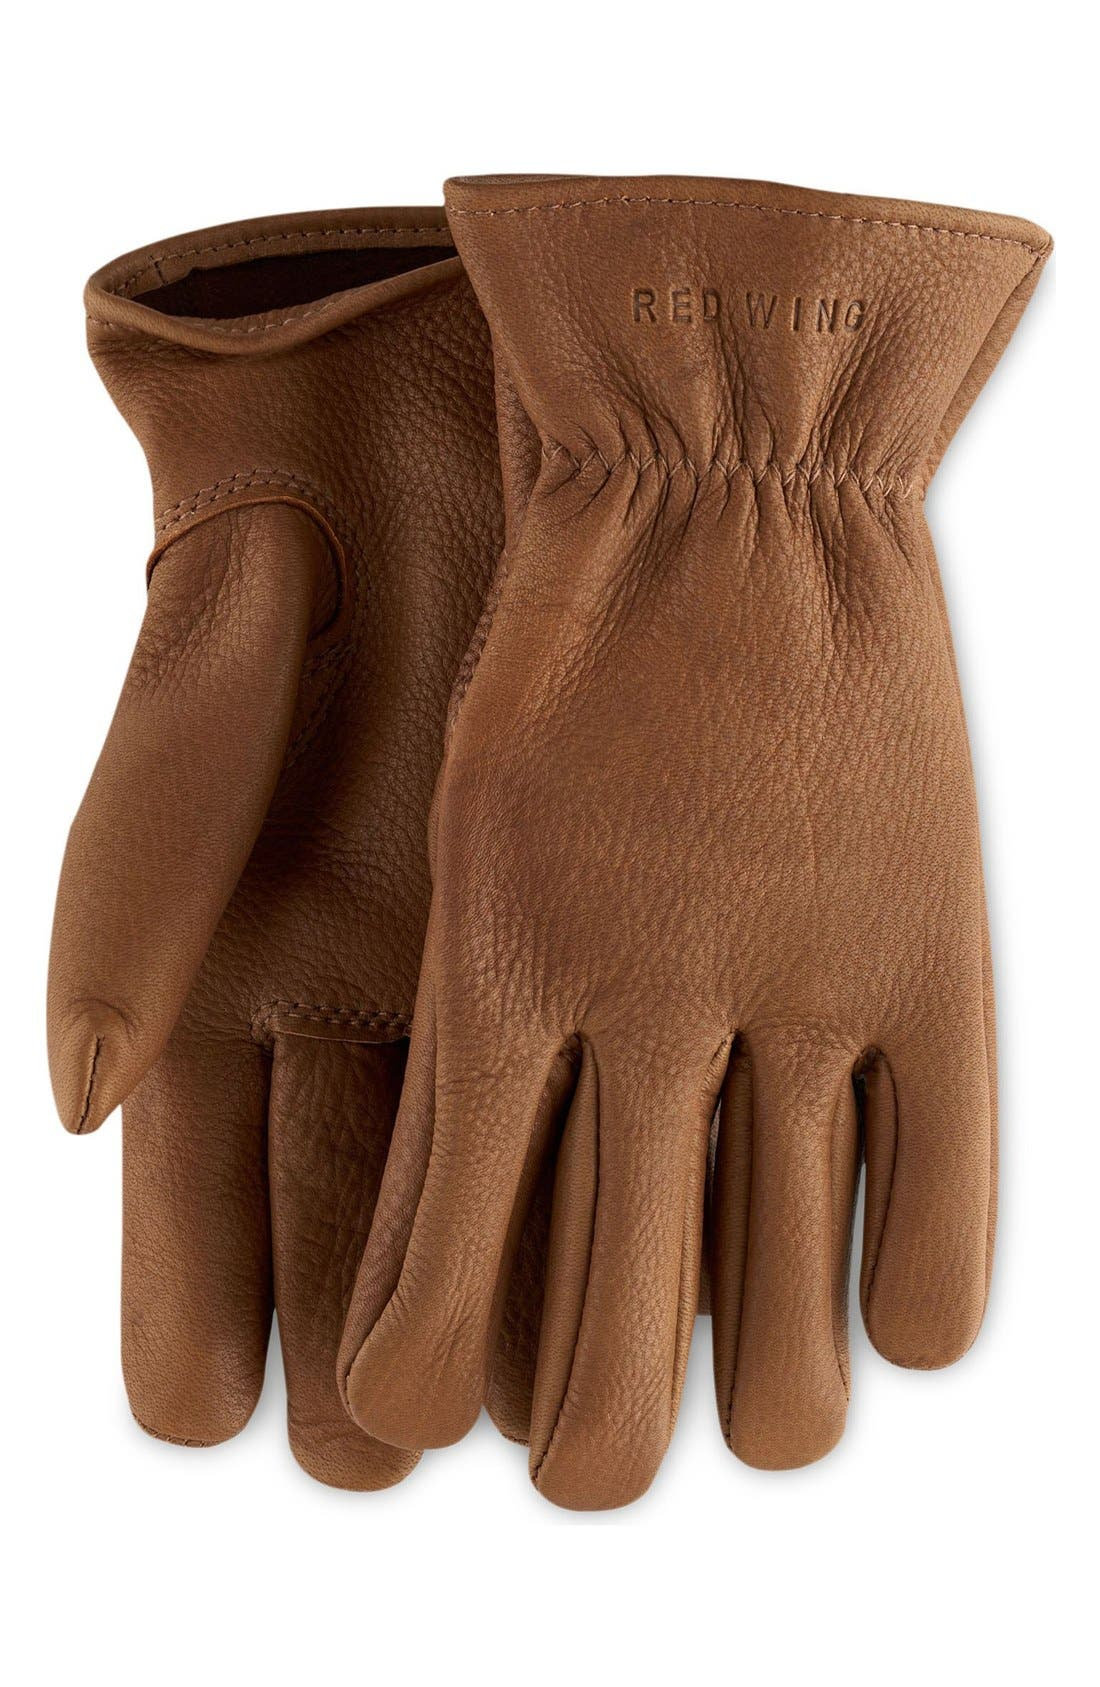 Buckskin Leather Gloves,                         Main,                         color, NUTMEG